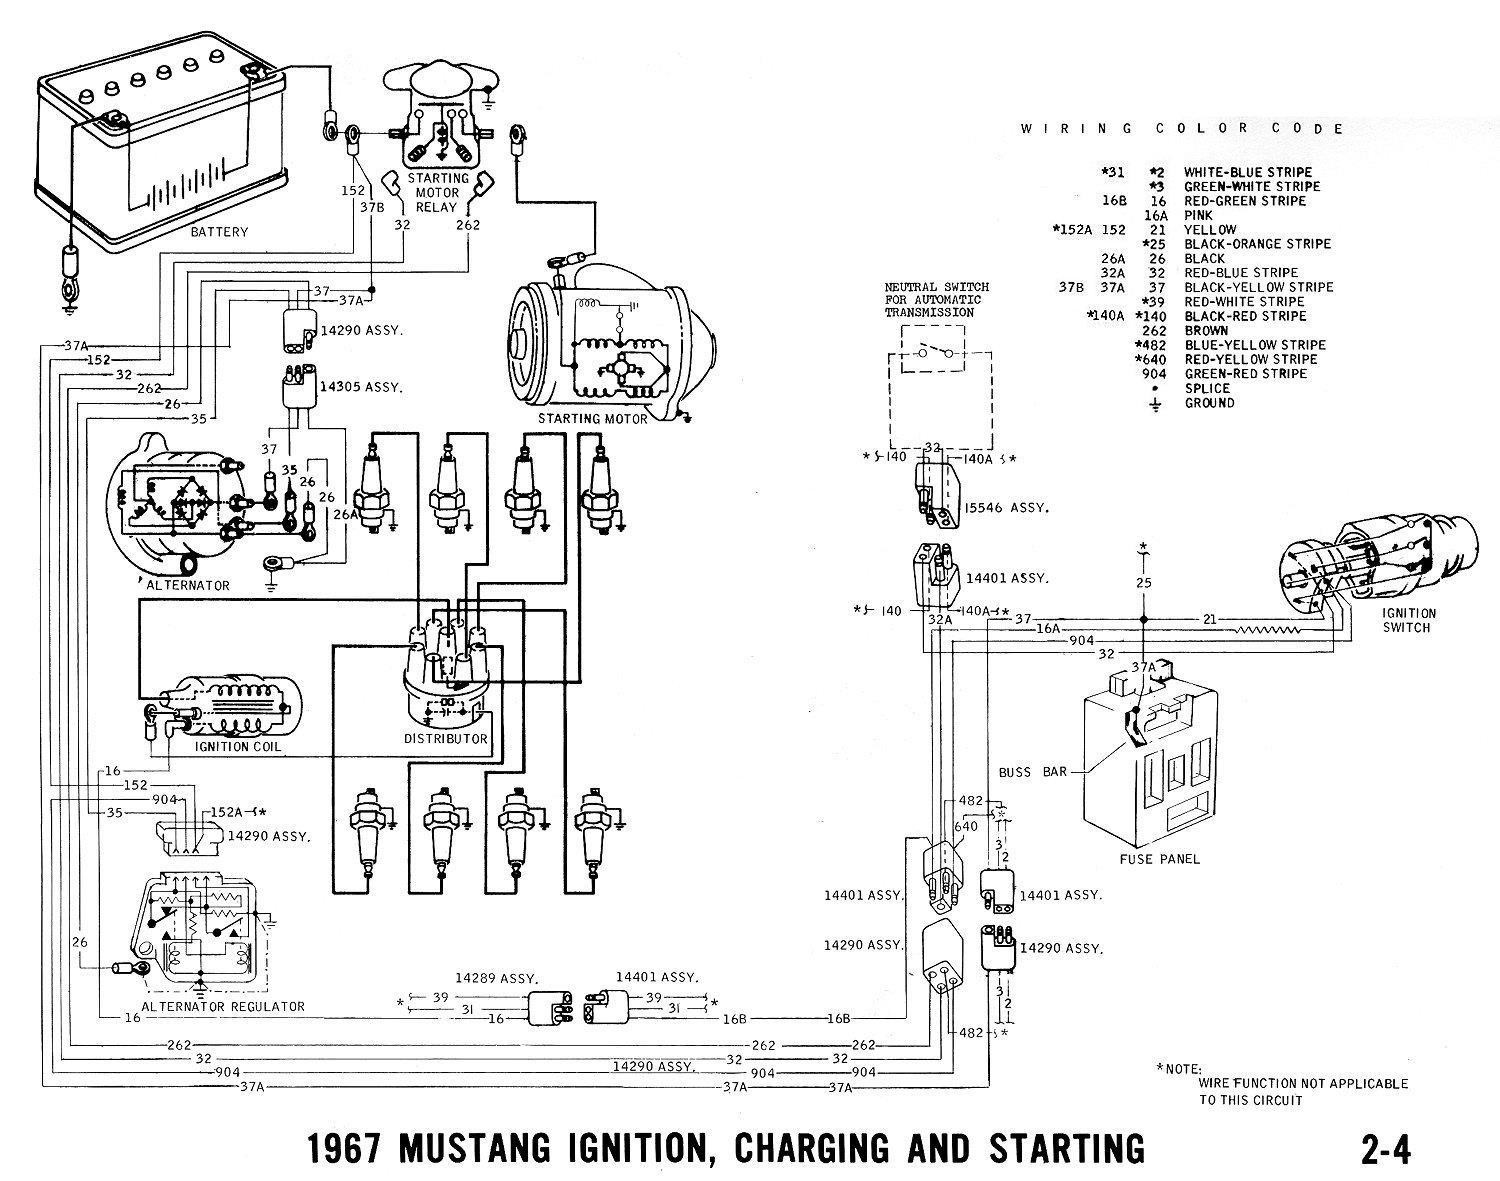 hight resolution of 1969 mustang distributor wiring diagram wiring diagram mega 1968 mustang distributor wiring diagram